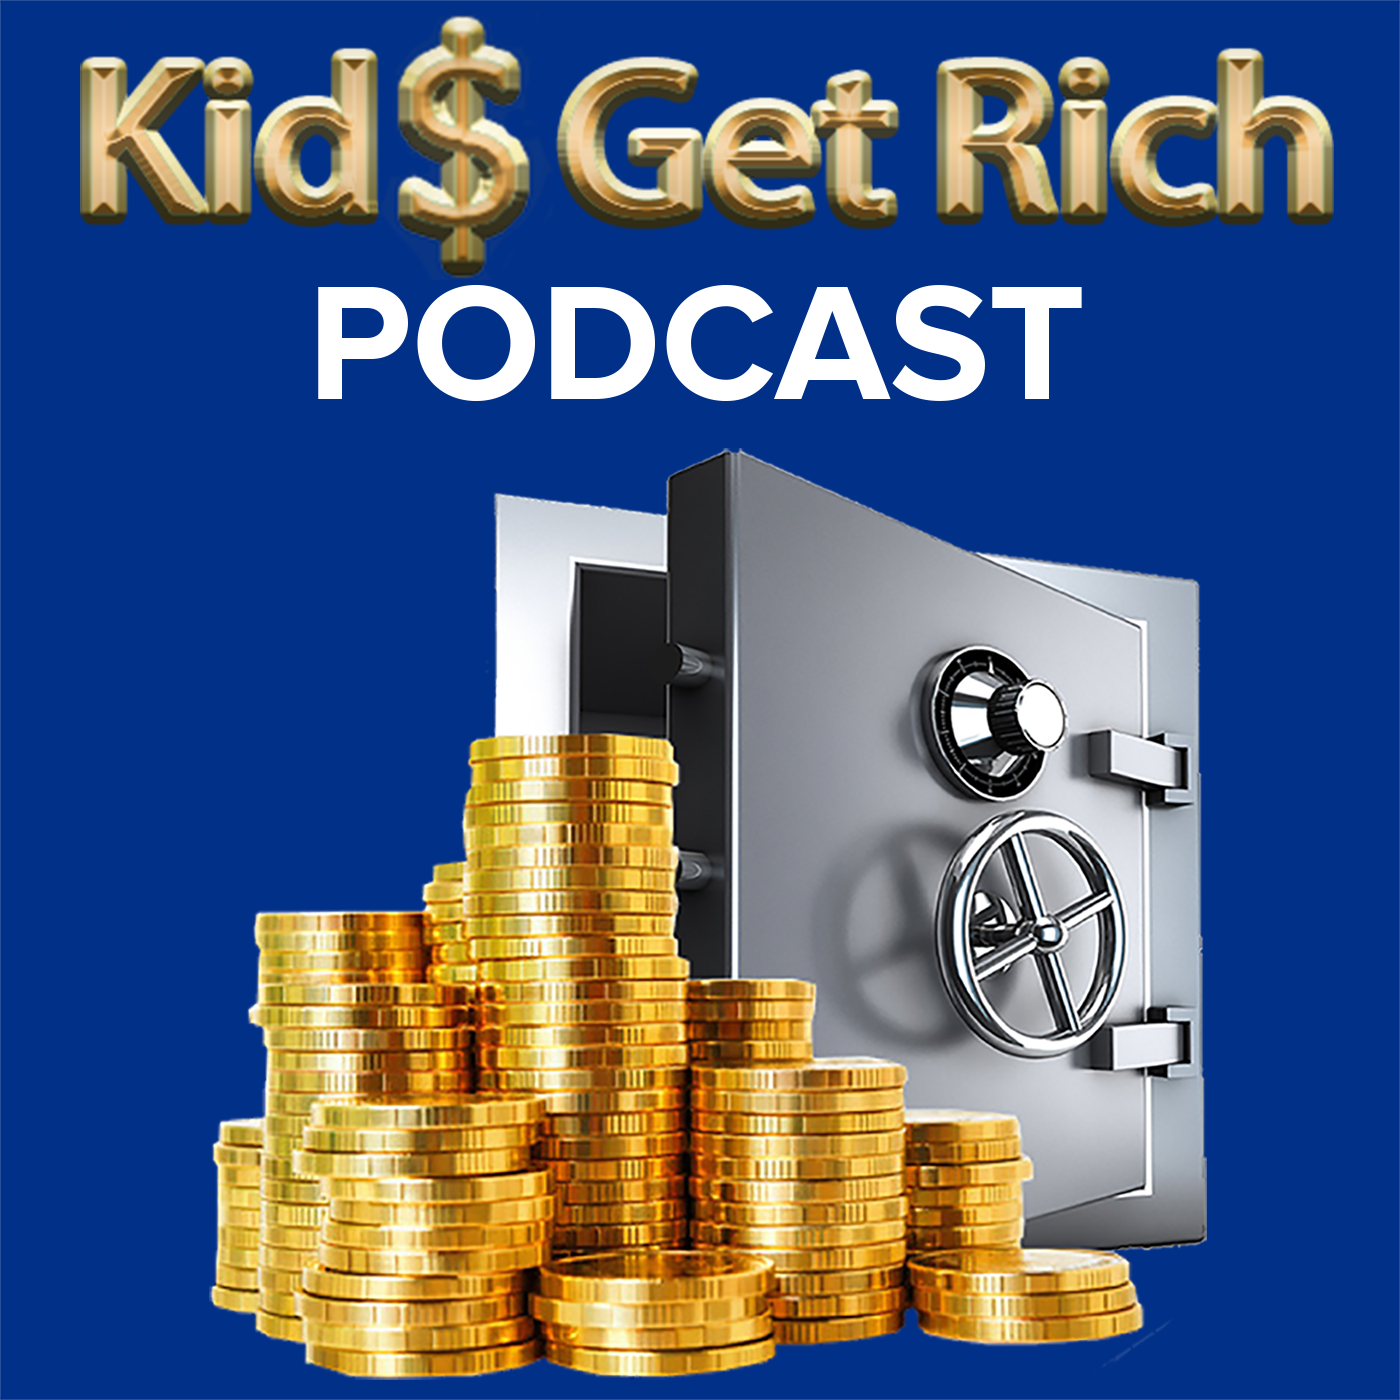 The Kids Get Rich Podcast | Listen Free on Castbox